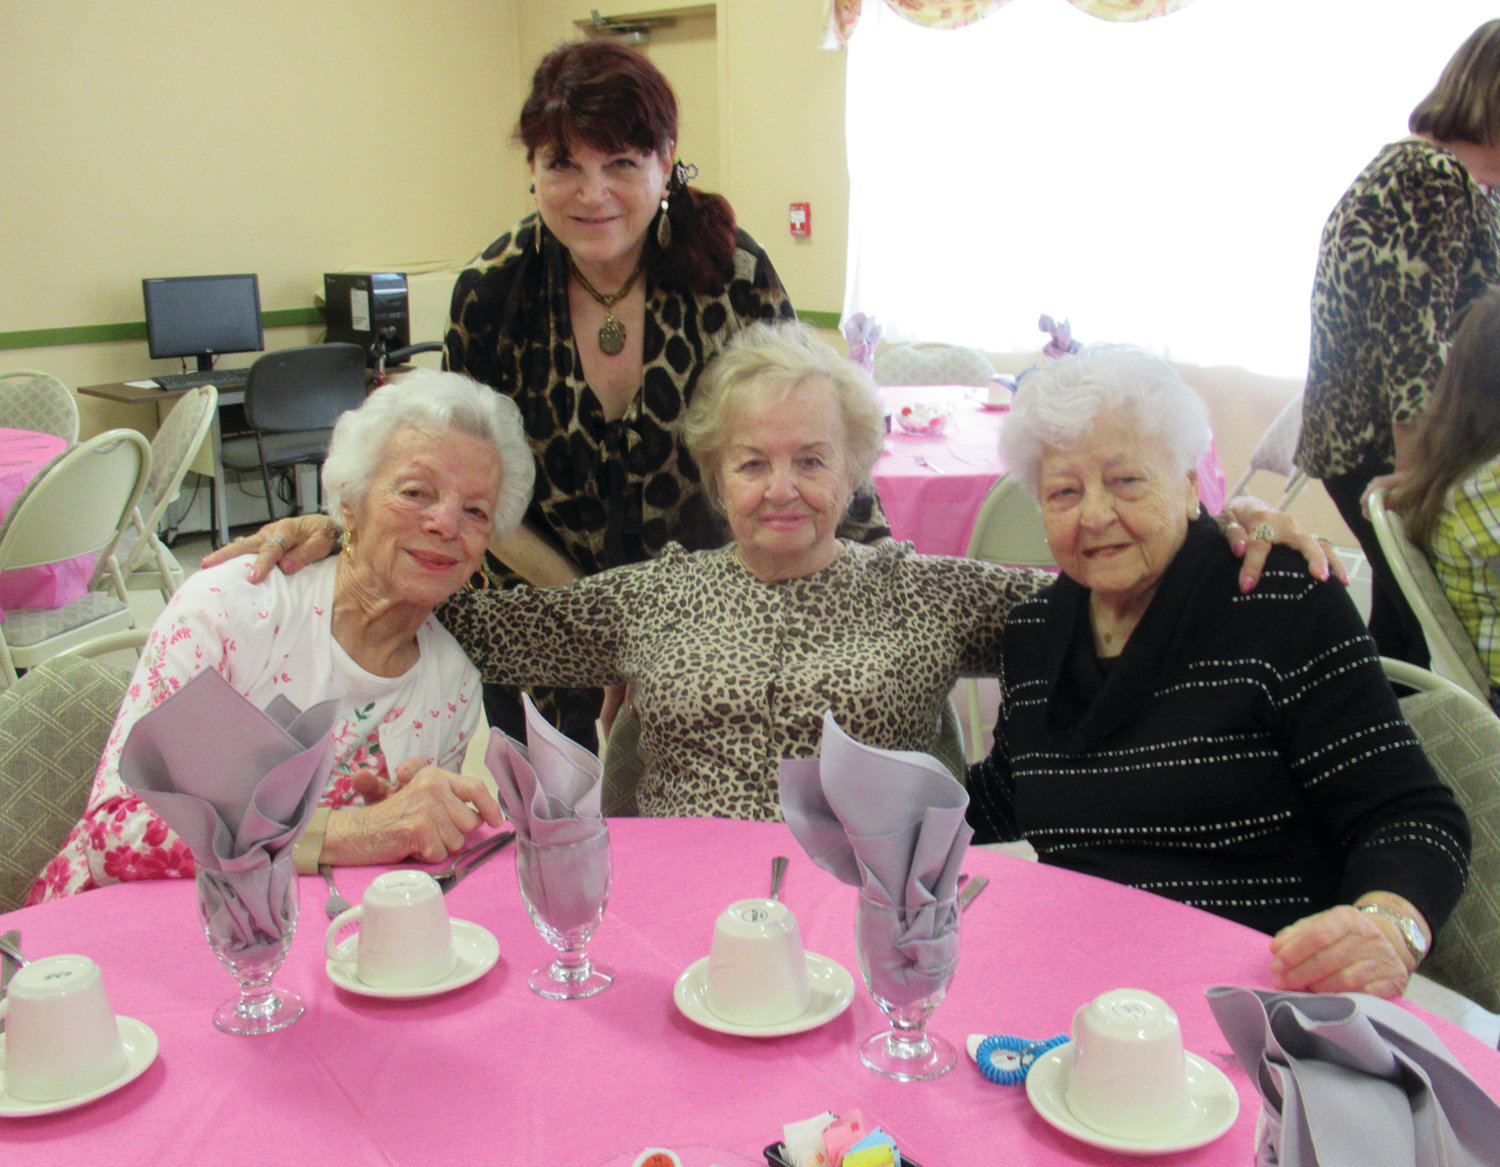 LINDA'S LINK: District 1 Town Councilwoman Linda Folcarelli chats with Pell Manor residents (from left) Etta Marrocco, Alice Perrotti and Josephine Pursche at last week's May Breakfast.